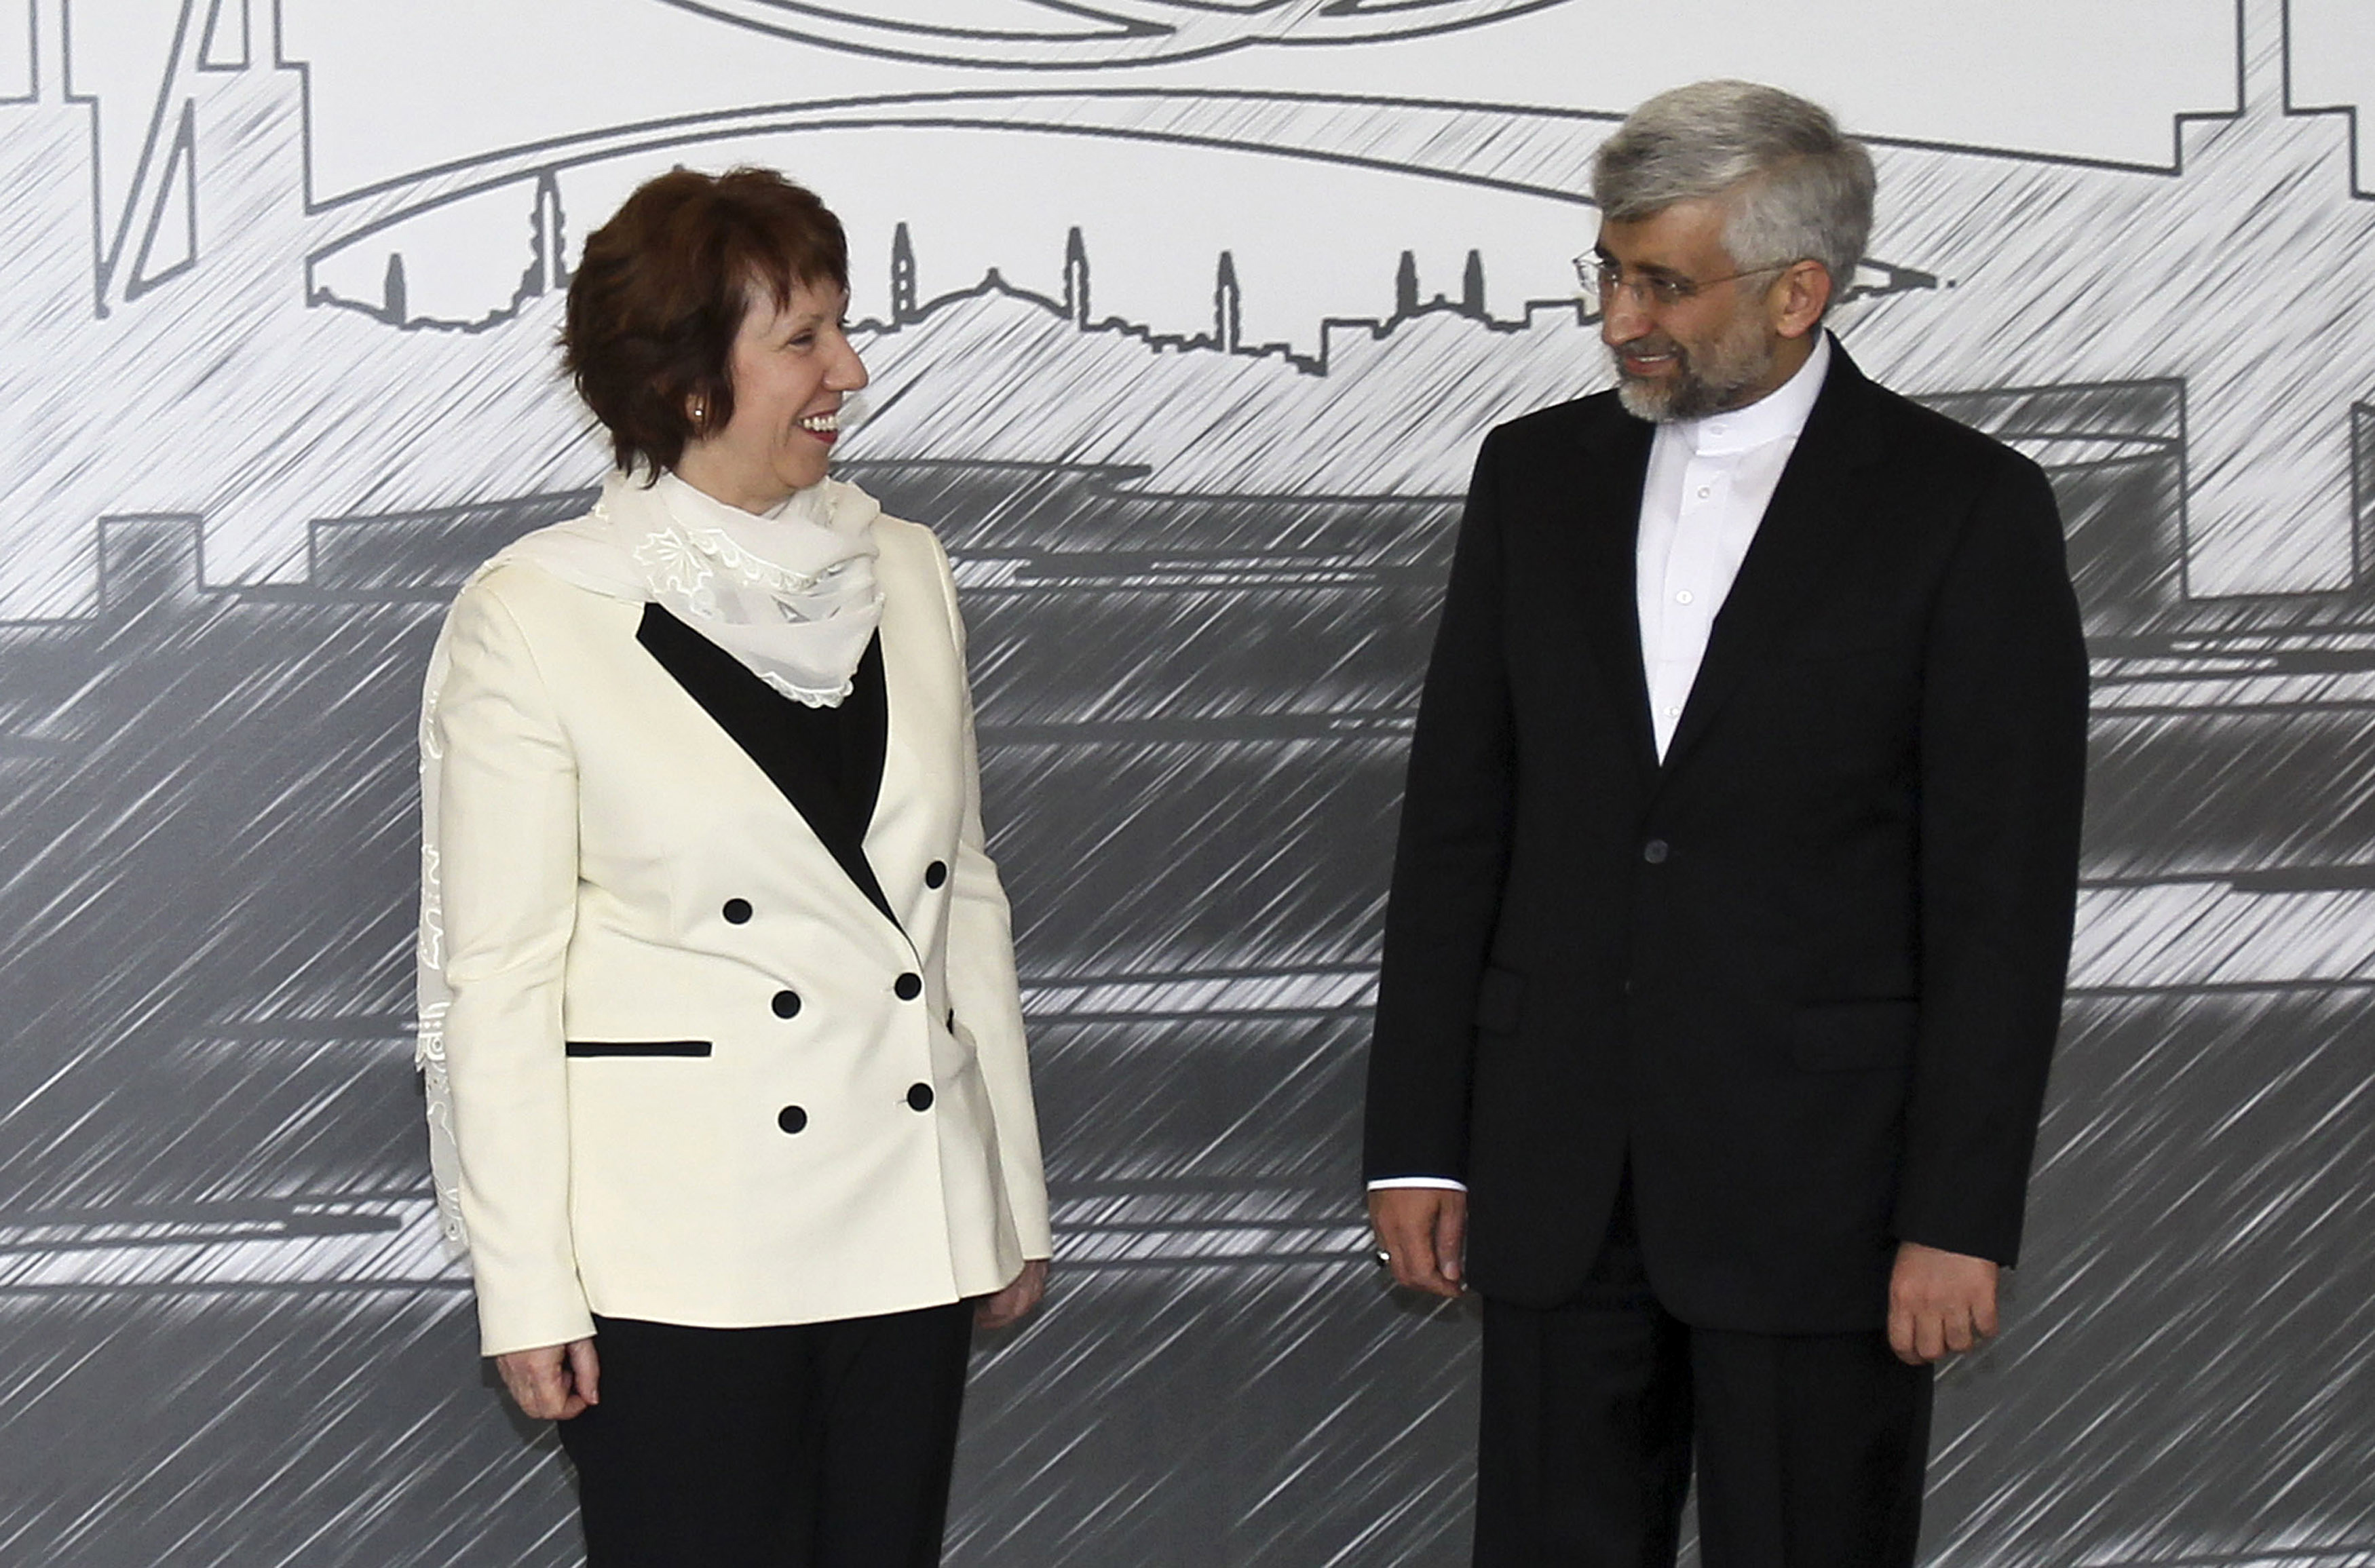 European Union foreign policy chief Catherine Ashton (L) and Iran's chief negotiator Saeed Jalili in Istanbul April 14, 2012